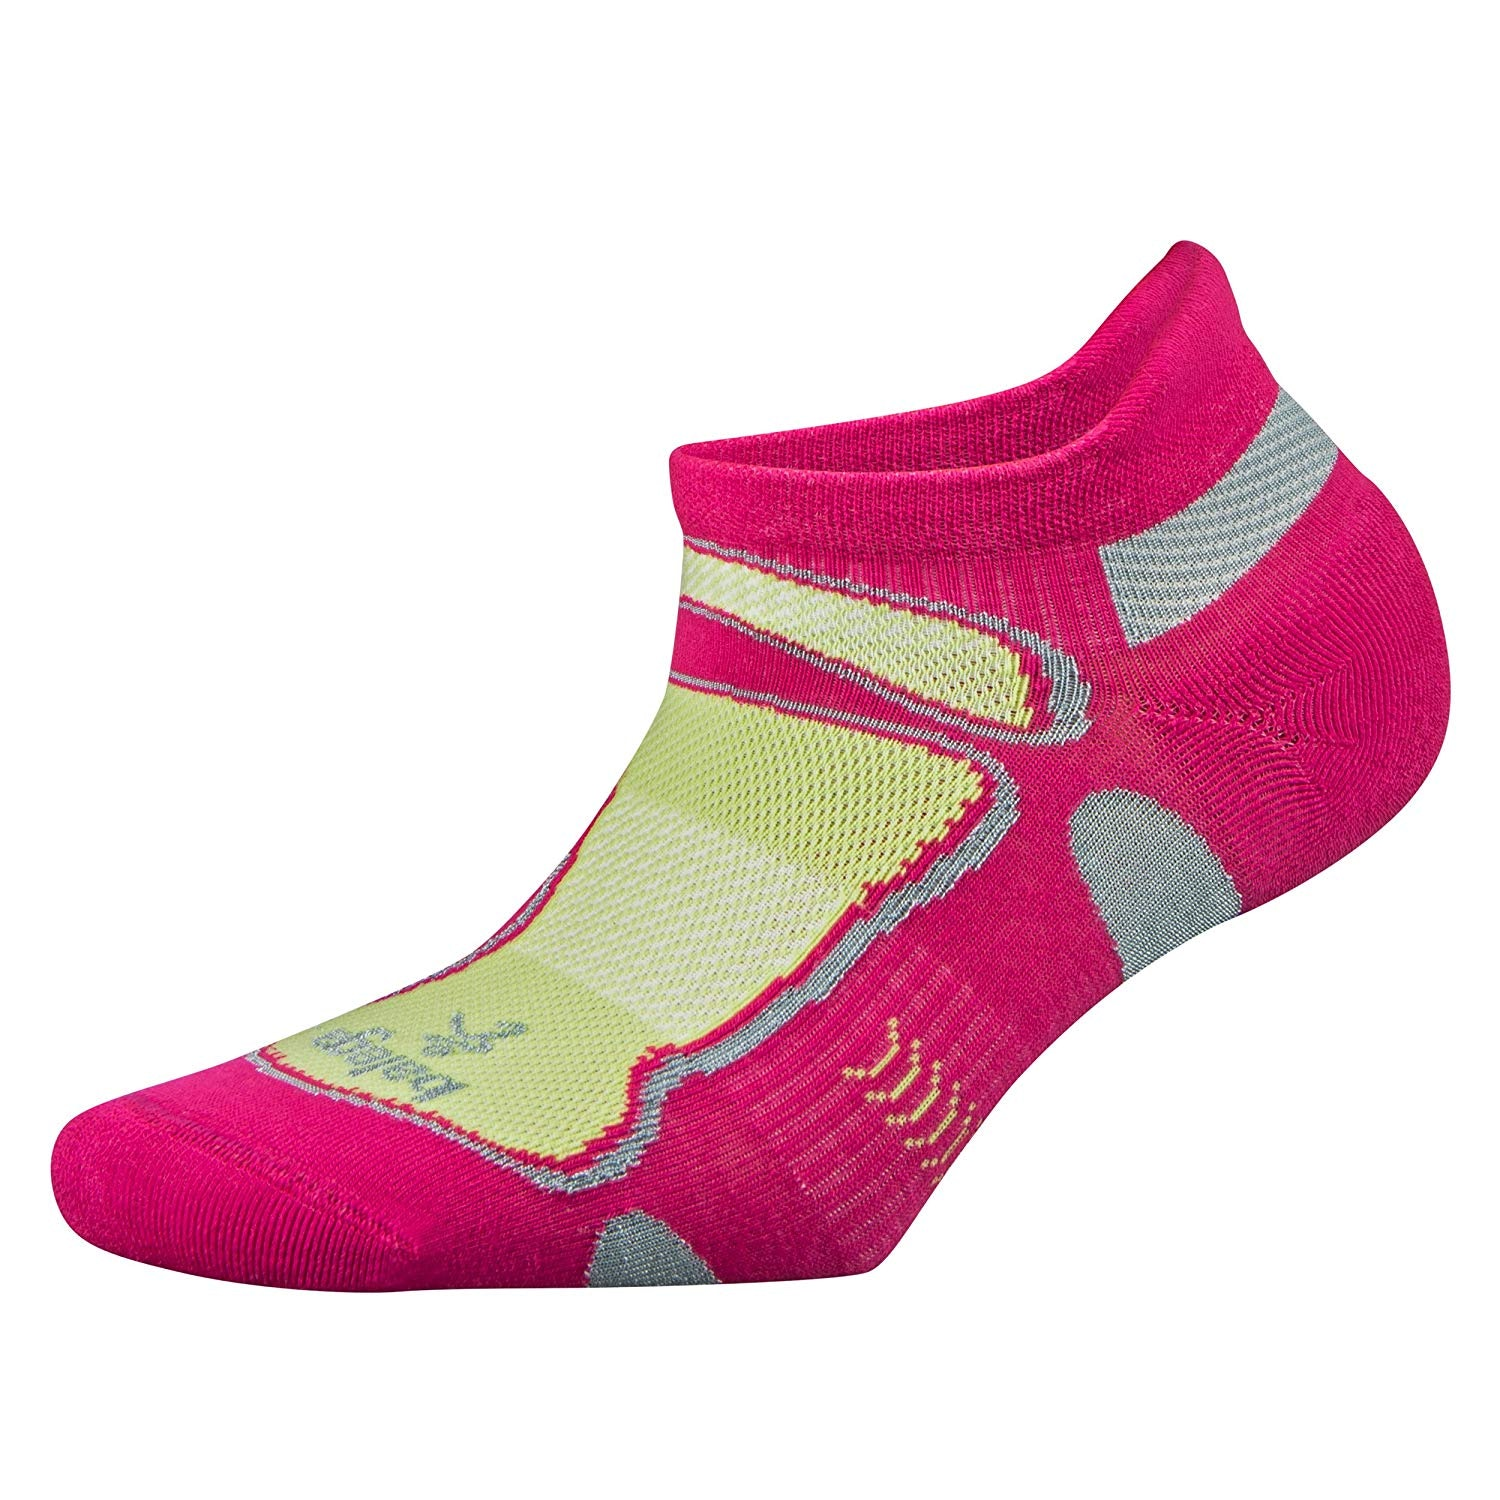 bdbae13088cc4 The 10 Best No-Show Socks For Women That Won't Give You Blisters